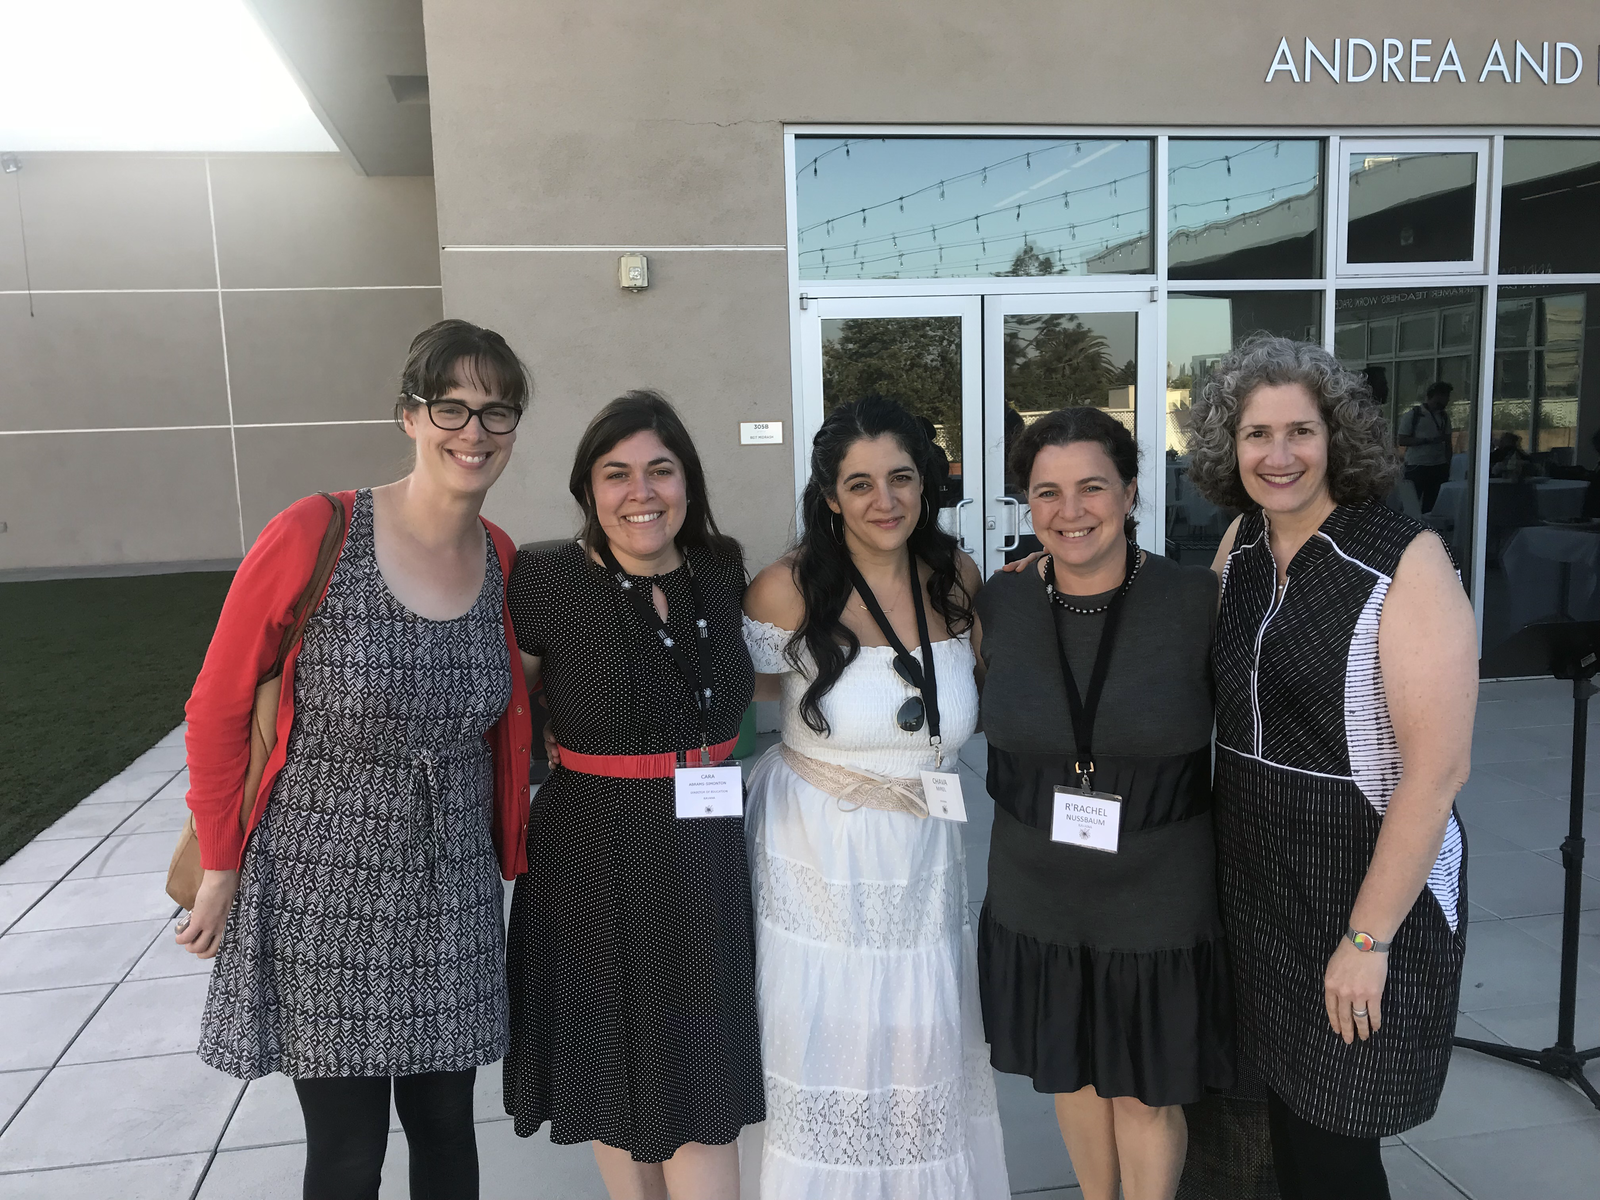 In June 2018, Rabbi Nussbaum and other Kavana staff and board members attended the (Re)Vision conference, hosted by the Jewish Emergent Network in L.A.